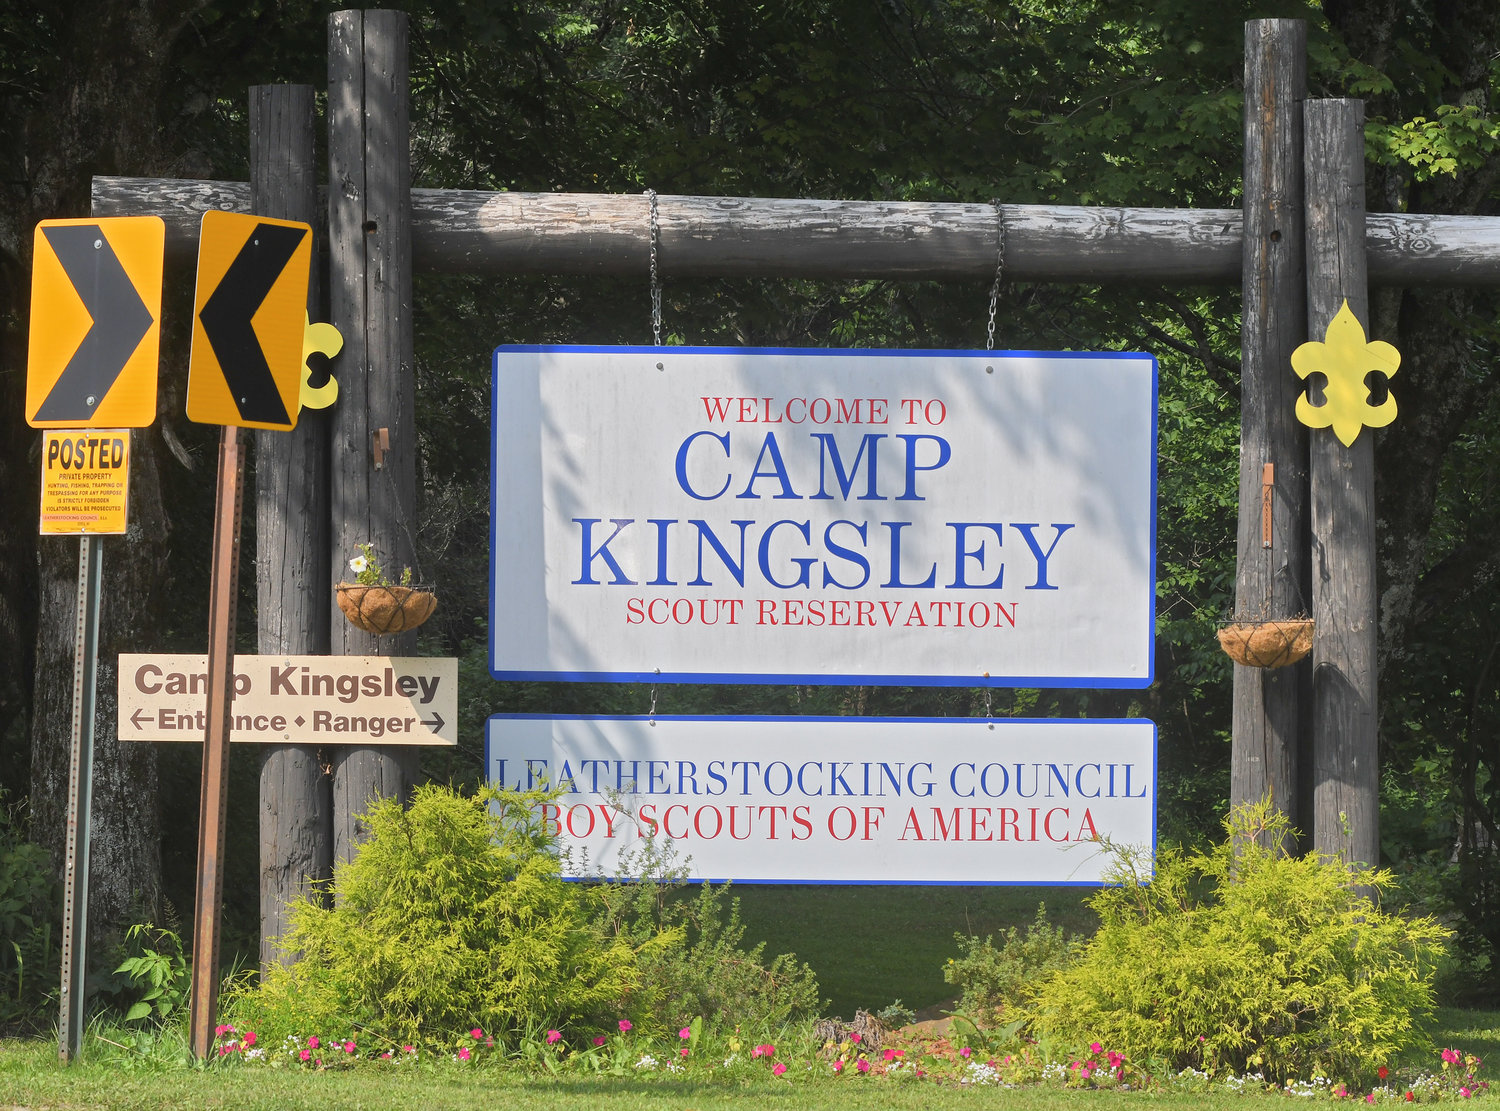 FUND DRIVE FOR CAMP — Camp Kingsley, a Boy Scouts site in Ava, may get a new welcome center if a fund drive raises $200,000 by next July 4. If the drive is successful, a donor has pledged an additional $100,000 toward the center's construction.